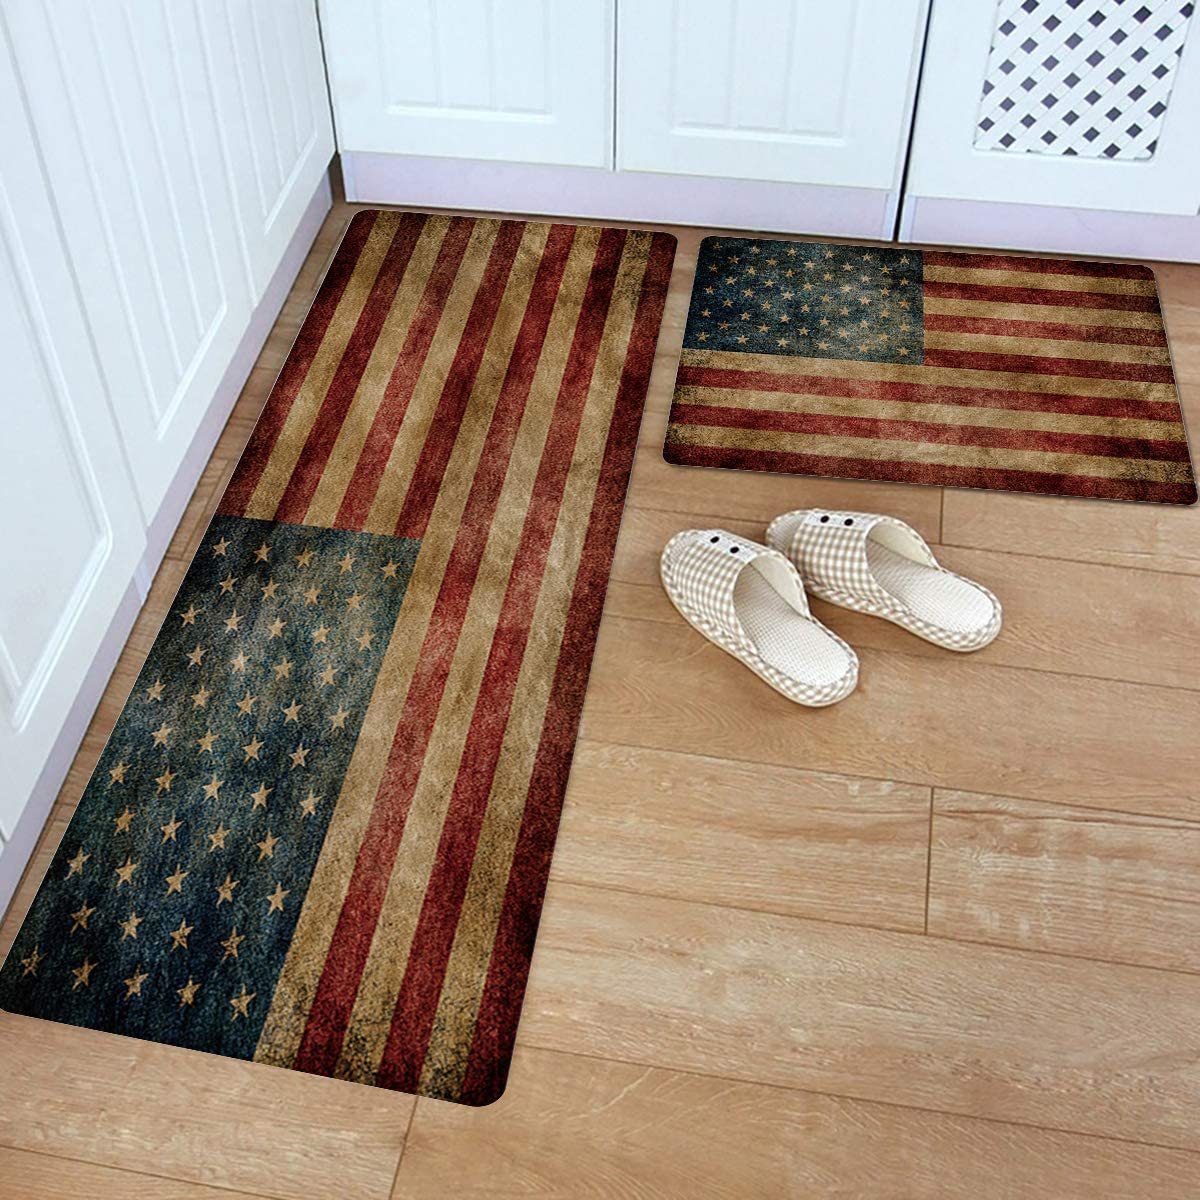 Kitchen Rug and Mats, Vintage American Flag Kitchen Floor Mats 9 Piece PVC  Leather Standing Mats Non Slip Rubber Back Washable Doormat Bathroom Area  ...